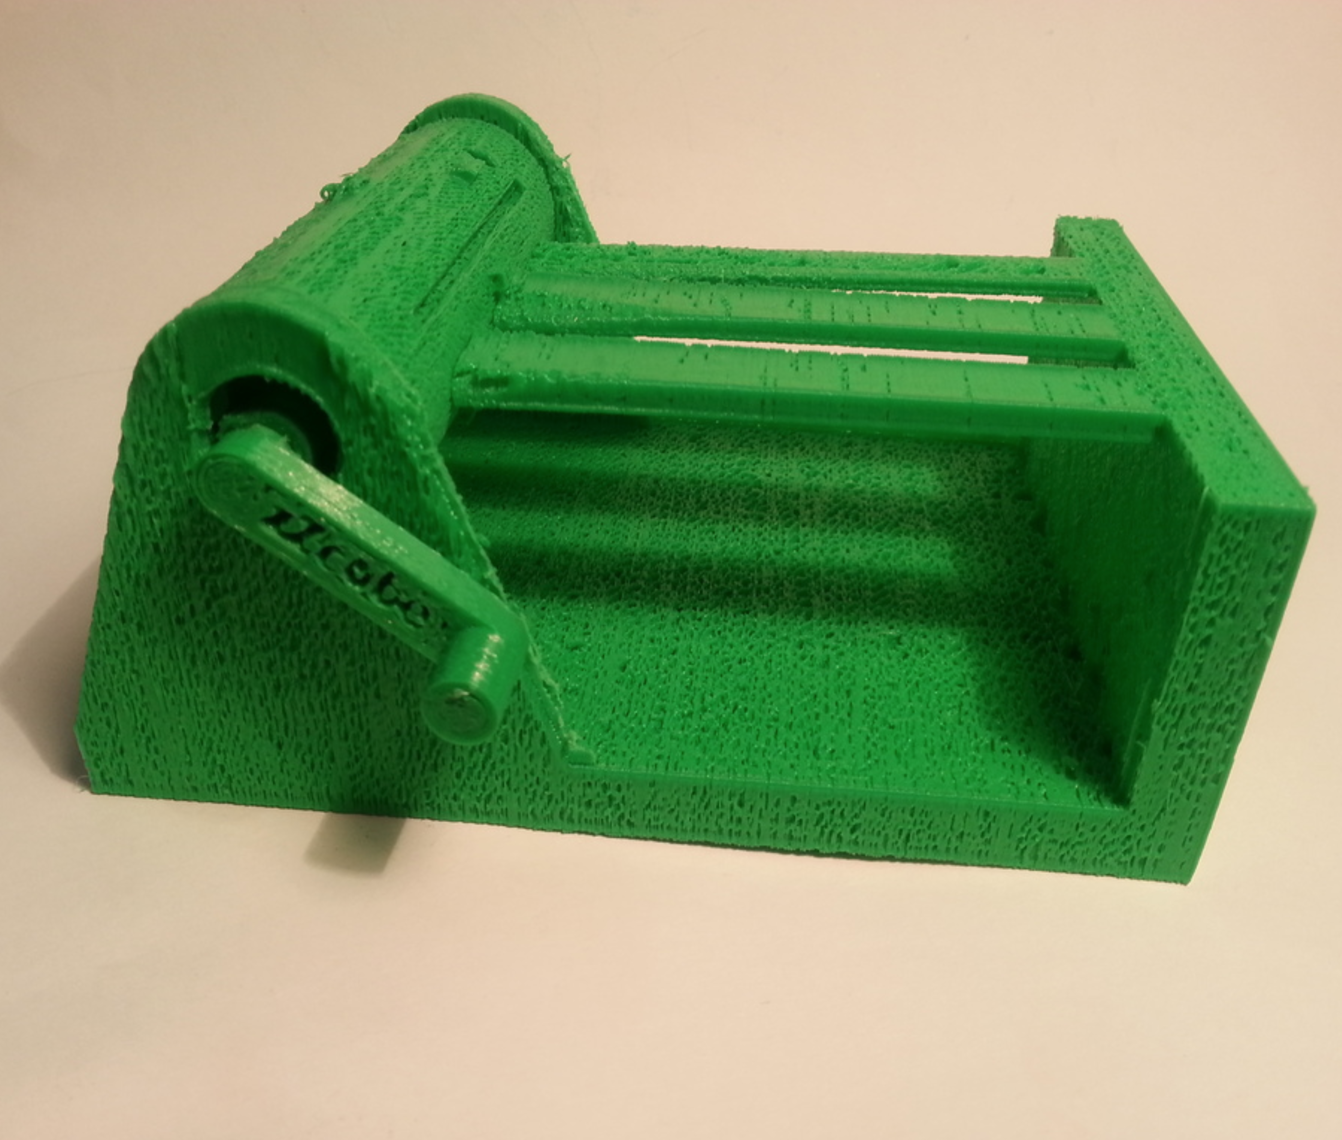 Capture d'écran 2016-12-14 à 16.13.43.png Download free STL file zZcube's Music Box (Tune Box) • Design to 3D print, Yuval_Dascalu